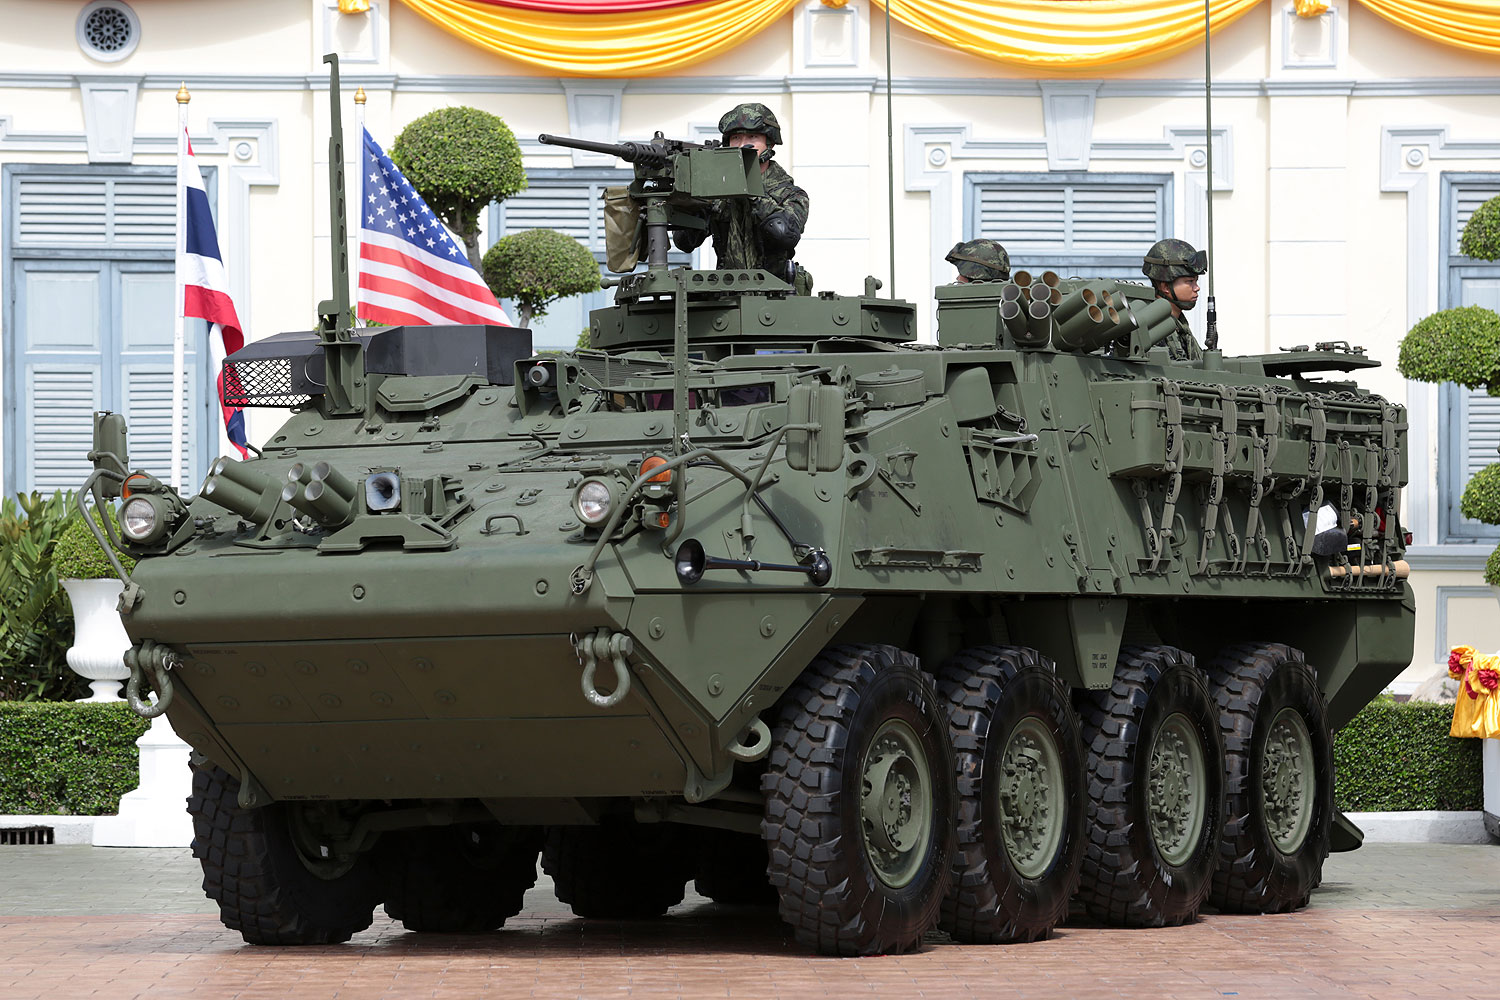 A Stryker armoured vehicle is displayed at the Royal Thai Army on Wednesday after the army received a batch of 10 of the 60 vehicles acquired from the US.